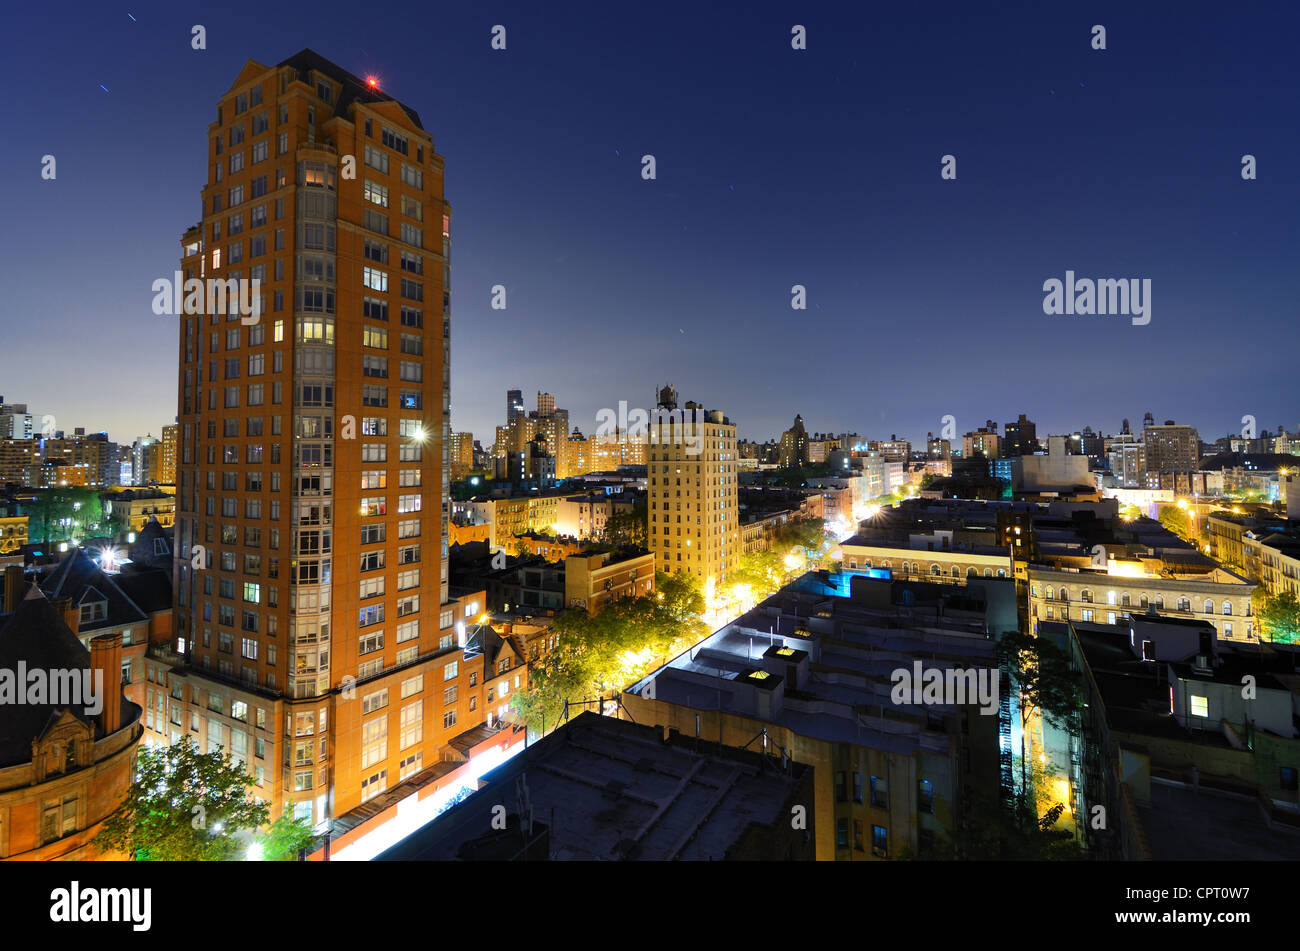 Des toits de bâtiments résidentiels à l'Upper West Side de Manhattan de nuit Photo Stock